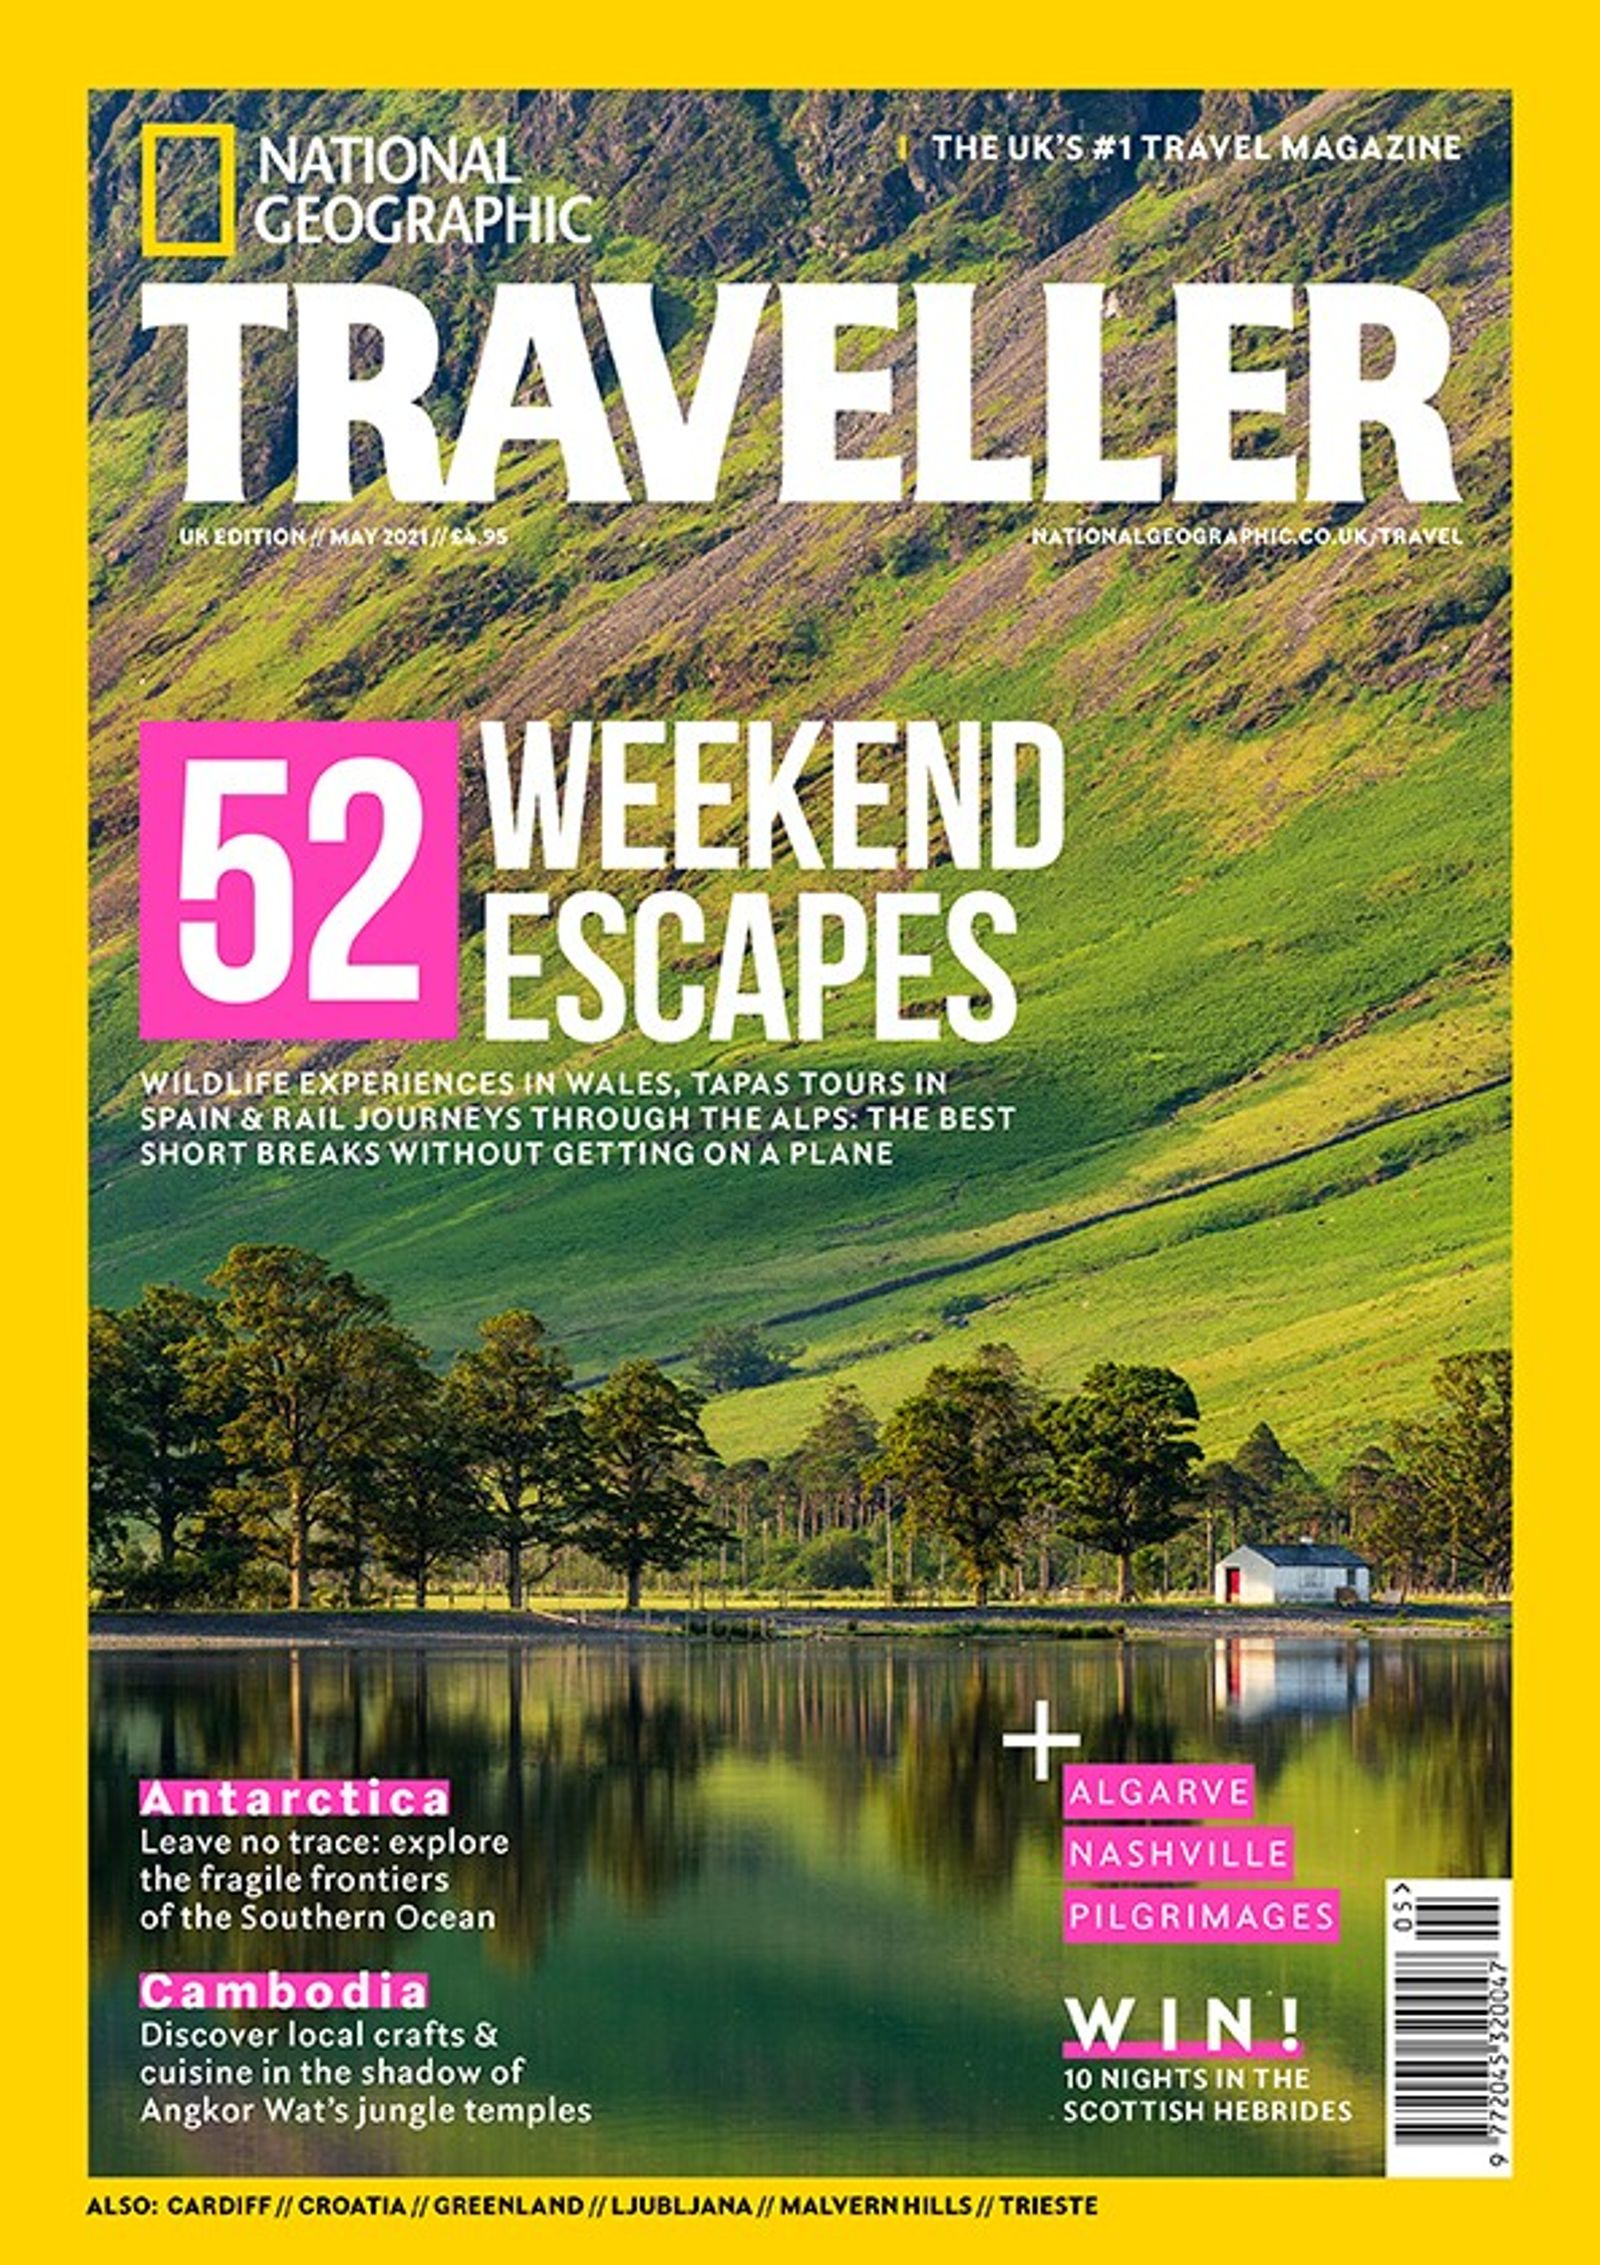 The May 2021 issue of National Geographic Traveller